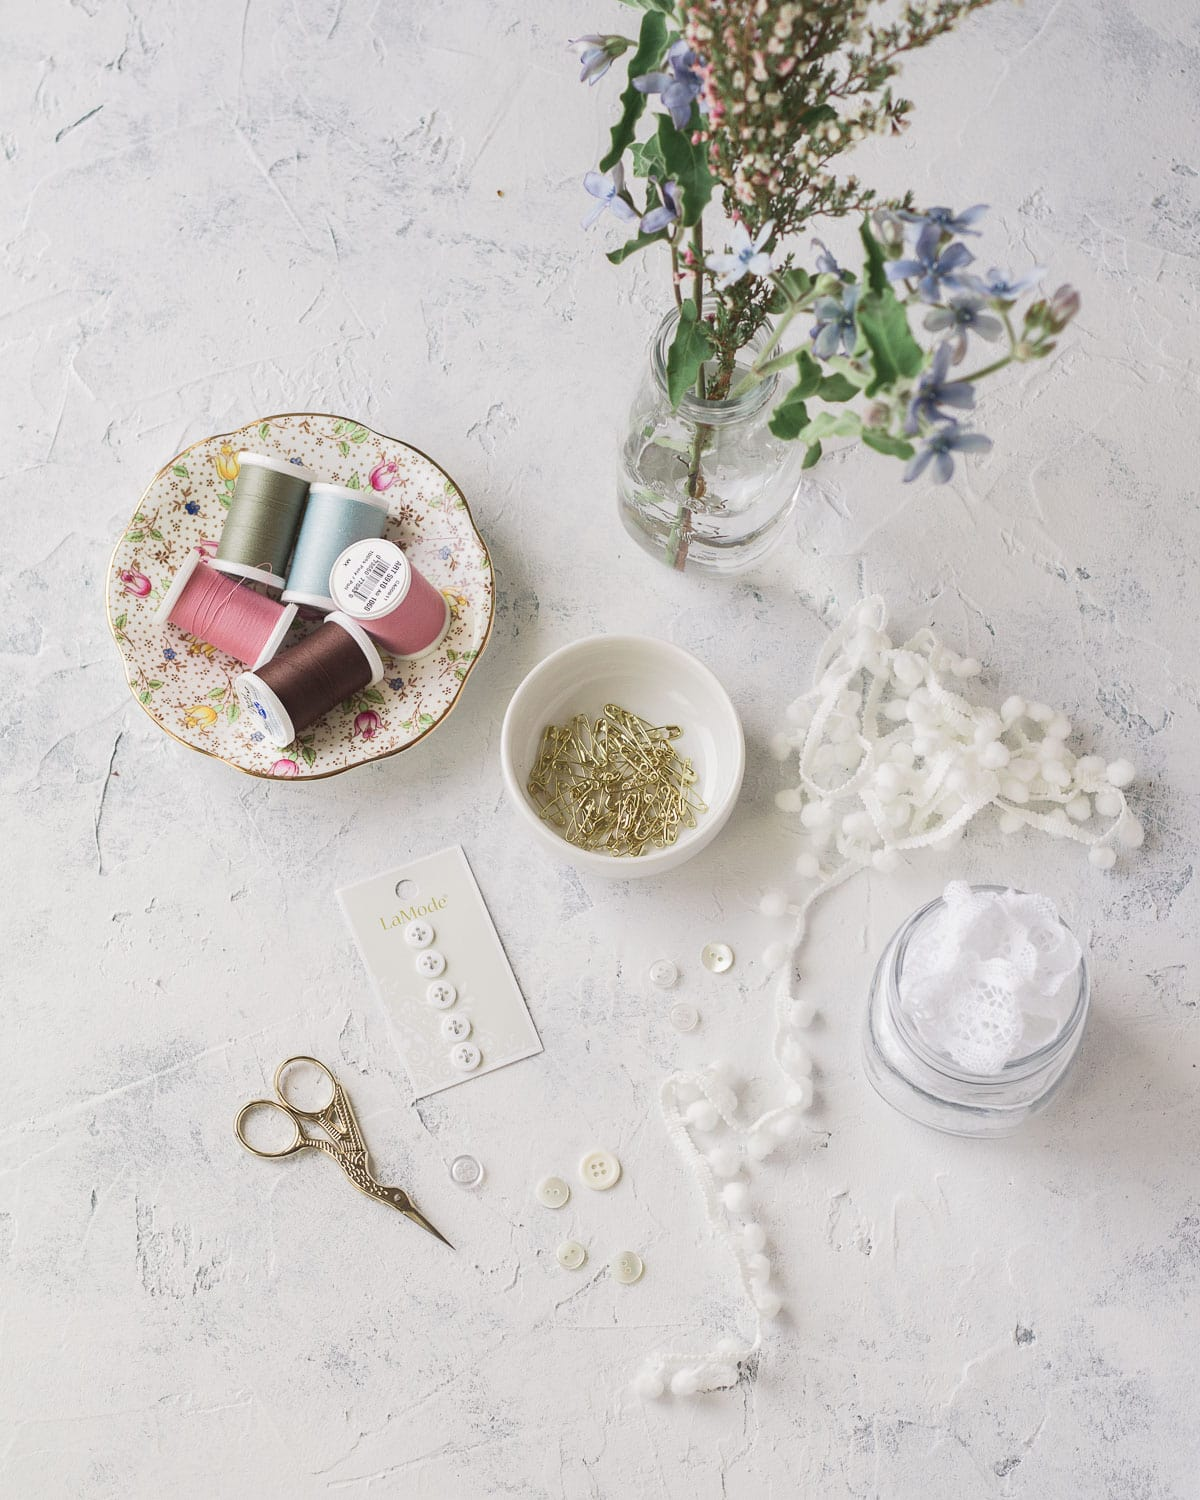 An array of sewing supplies and lace trims on a textured background.